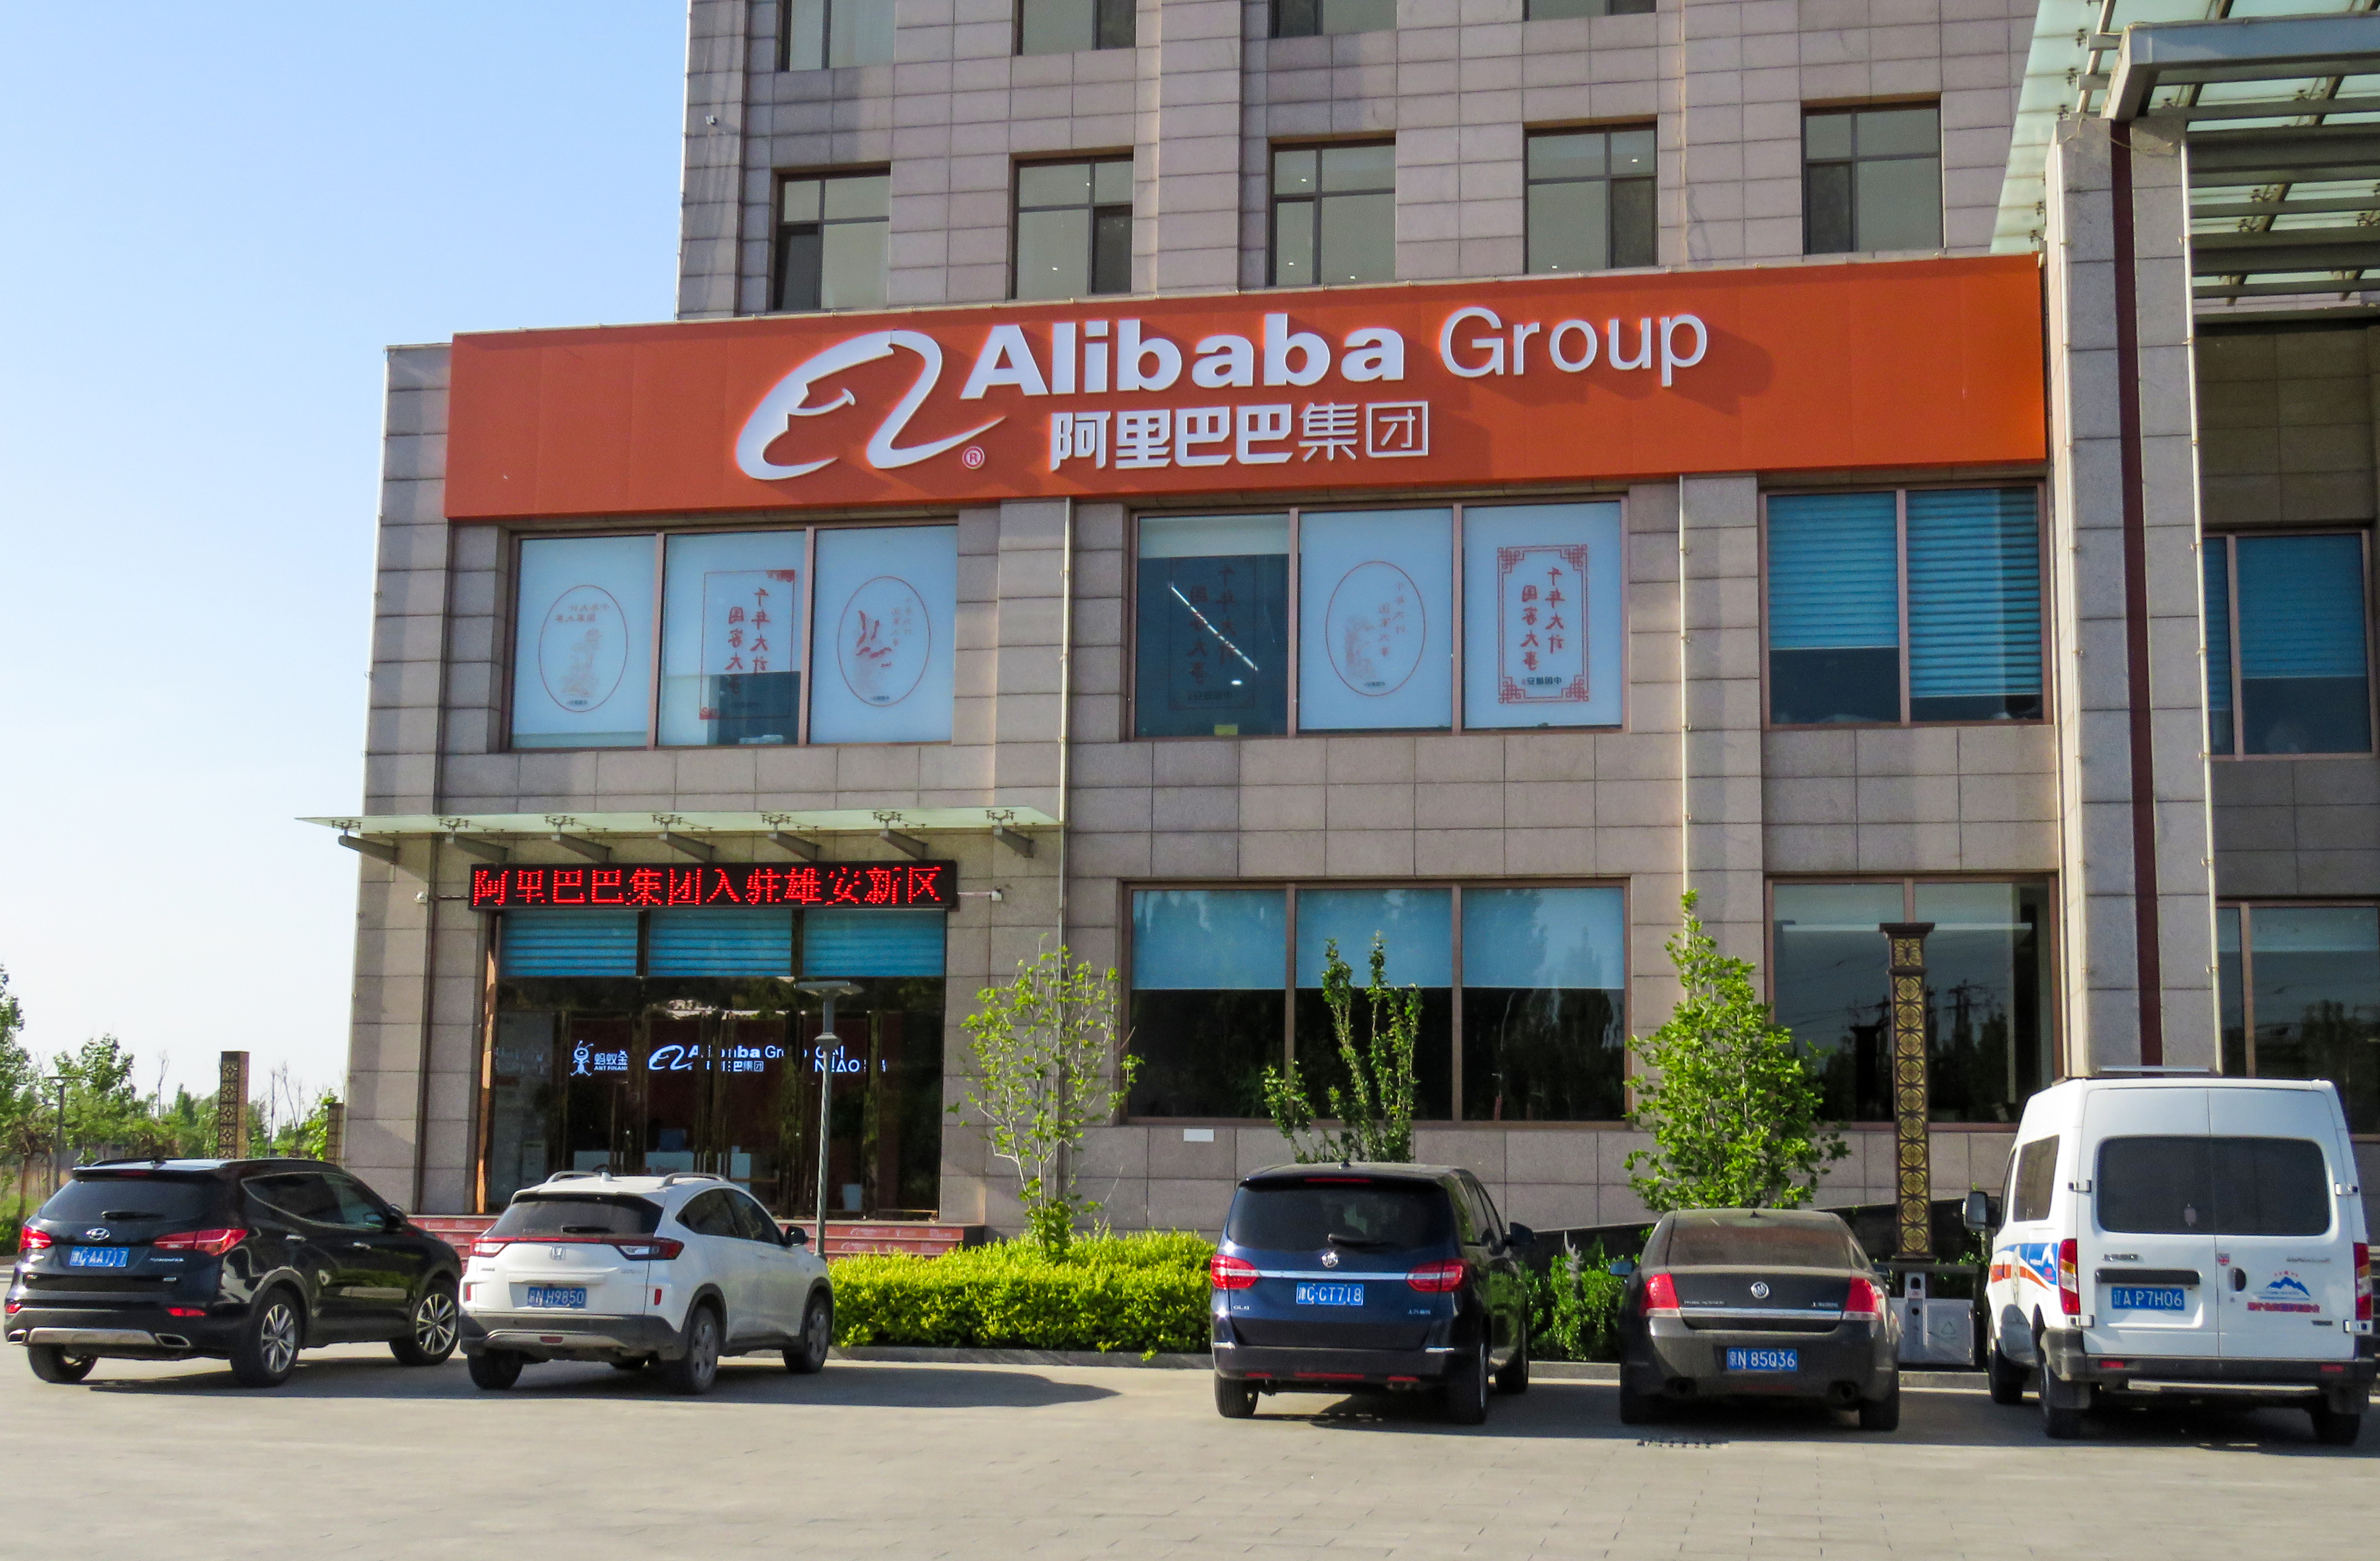 File:Alibaba Group provisional office at Xiong'an (20180503164635 ...